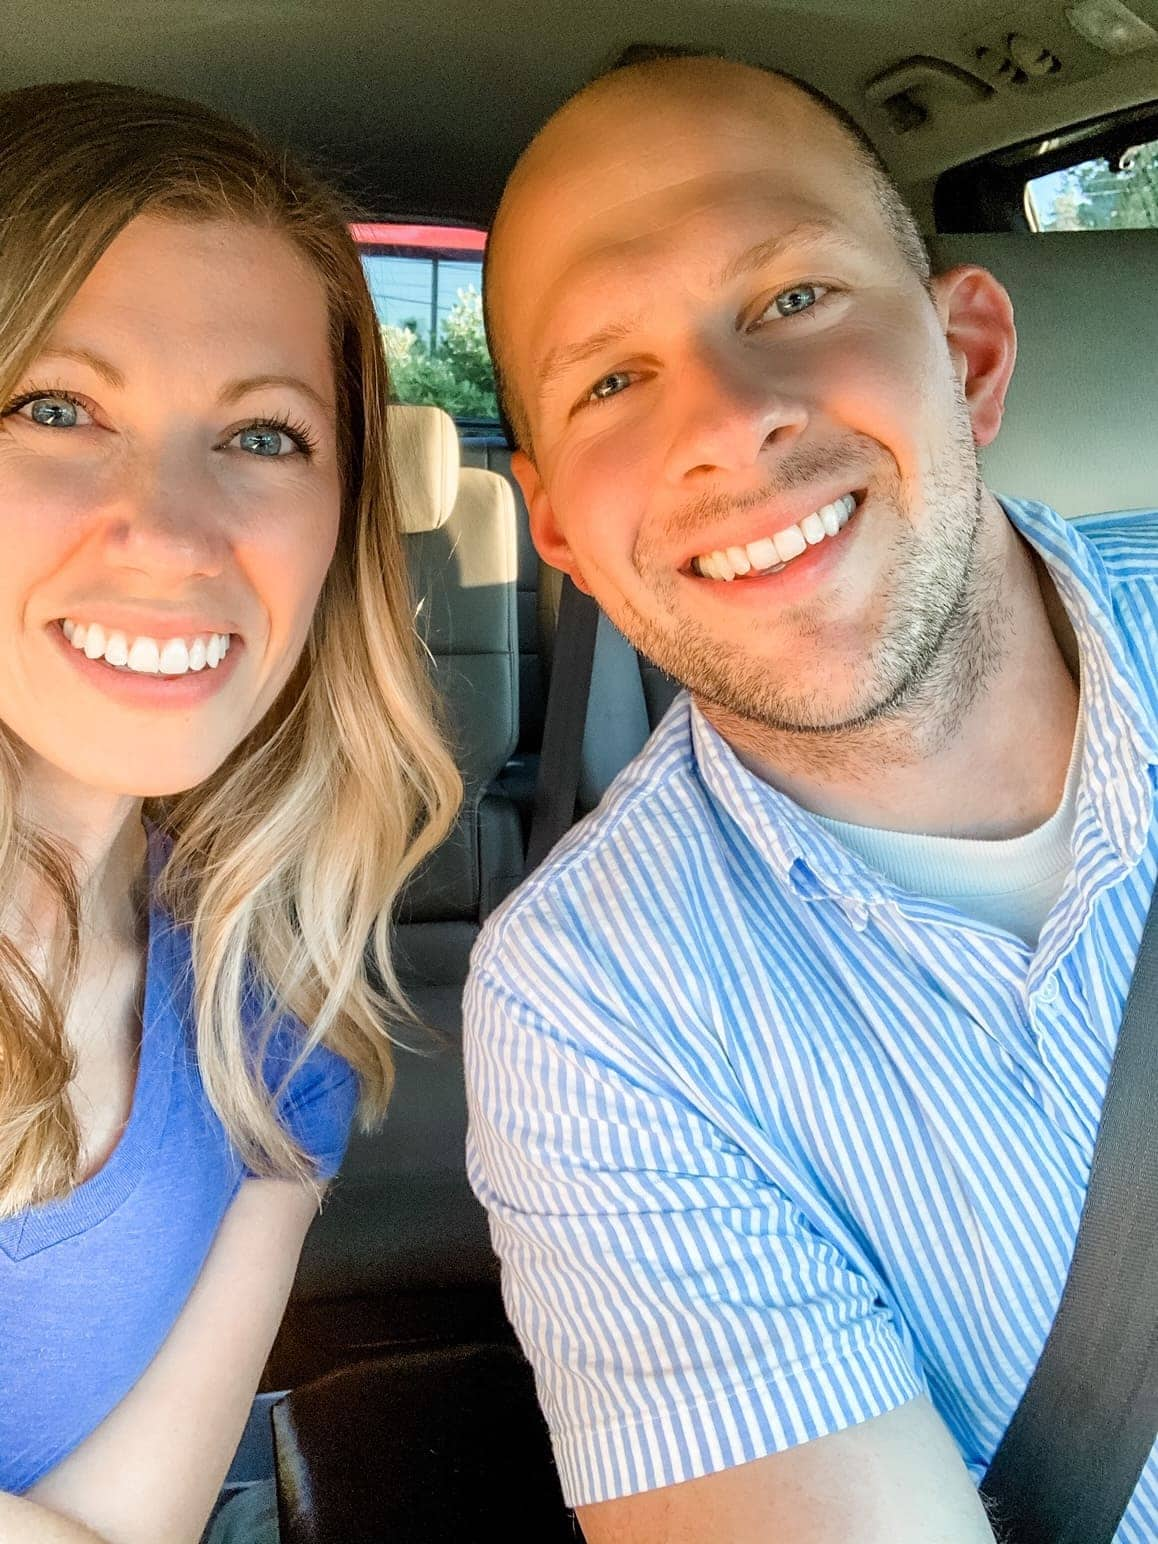 husband and wife selfie in a car